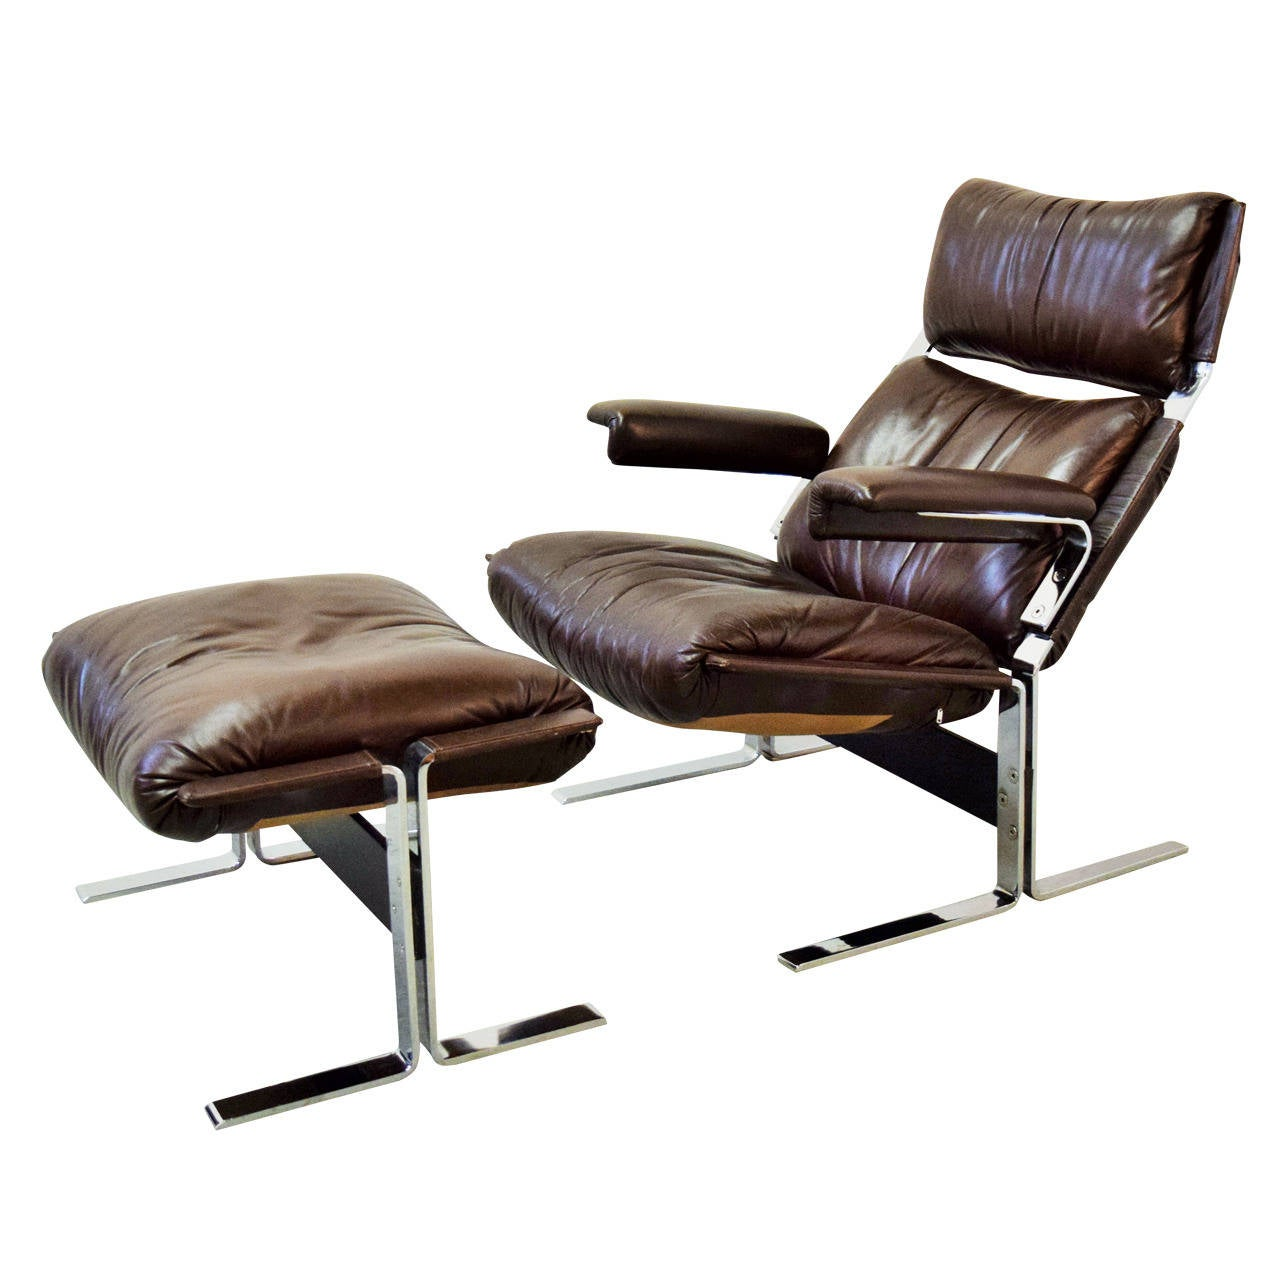 leather lounge chair and ottoman by kipp stewart at 1stdibs. Black Bedroom Furniture Sets. Home Design Ideas